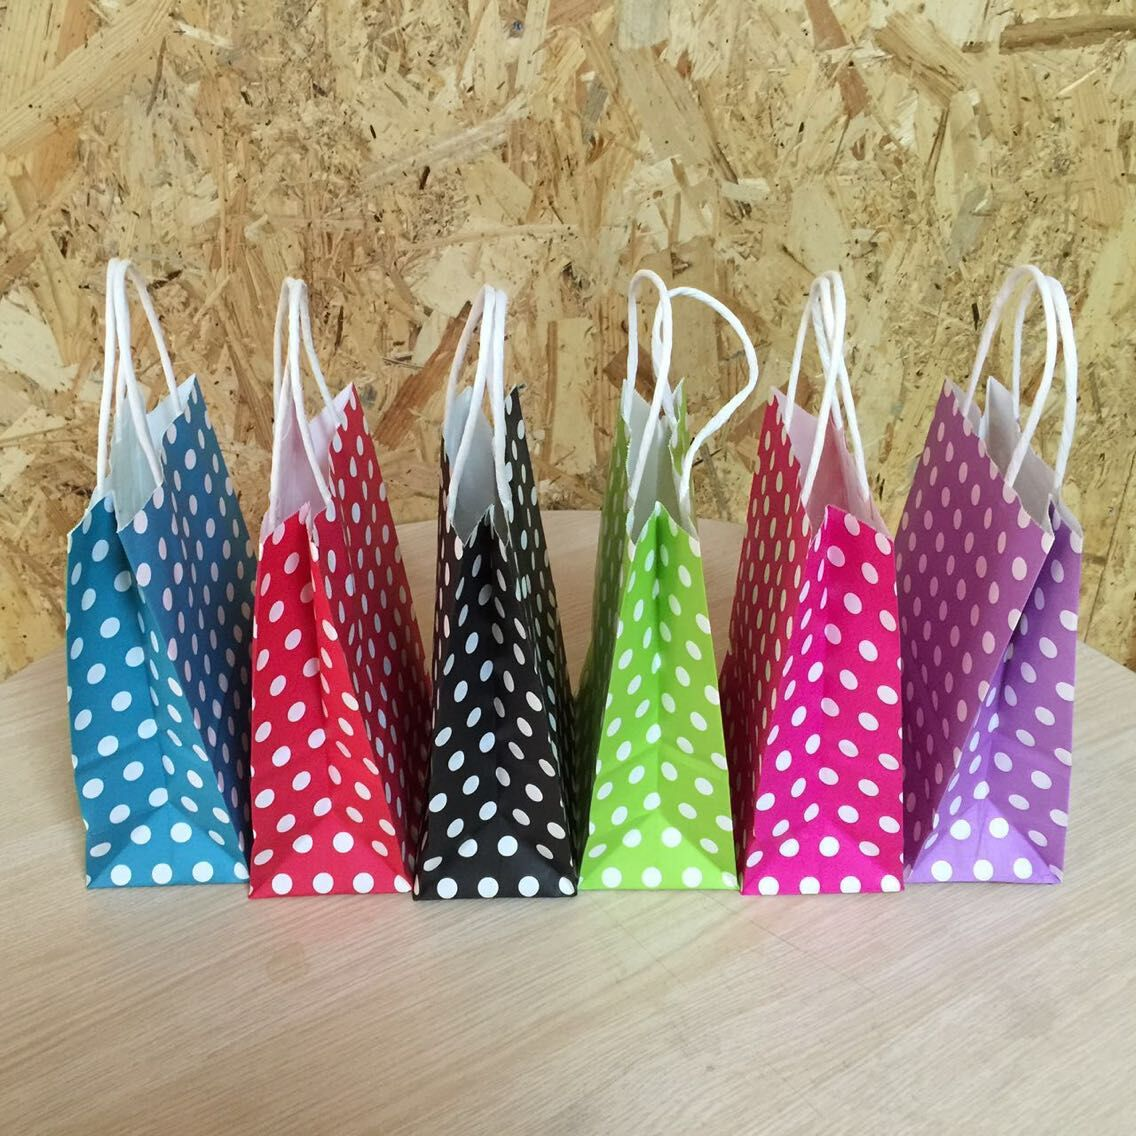 Paper Gift Bags Wholesale Online Buy Wholesale Polka Dot Gift Bag From China Polka